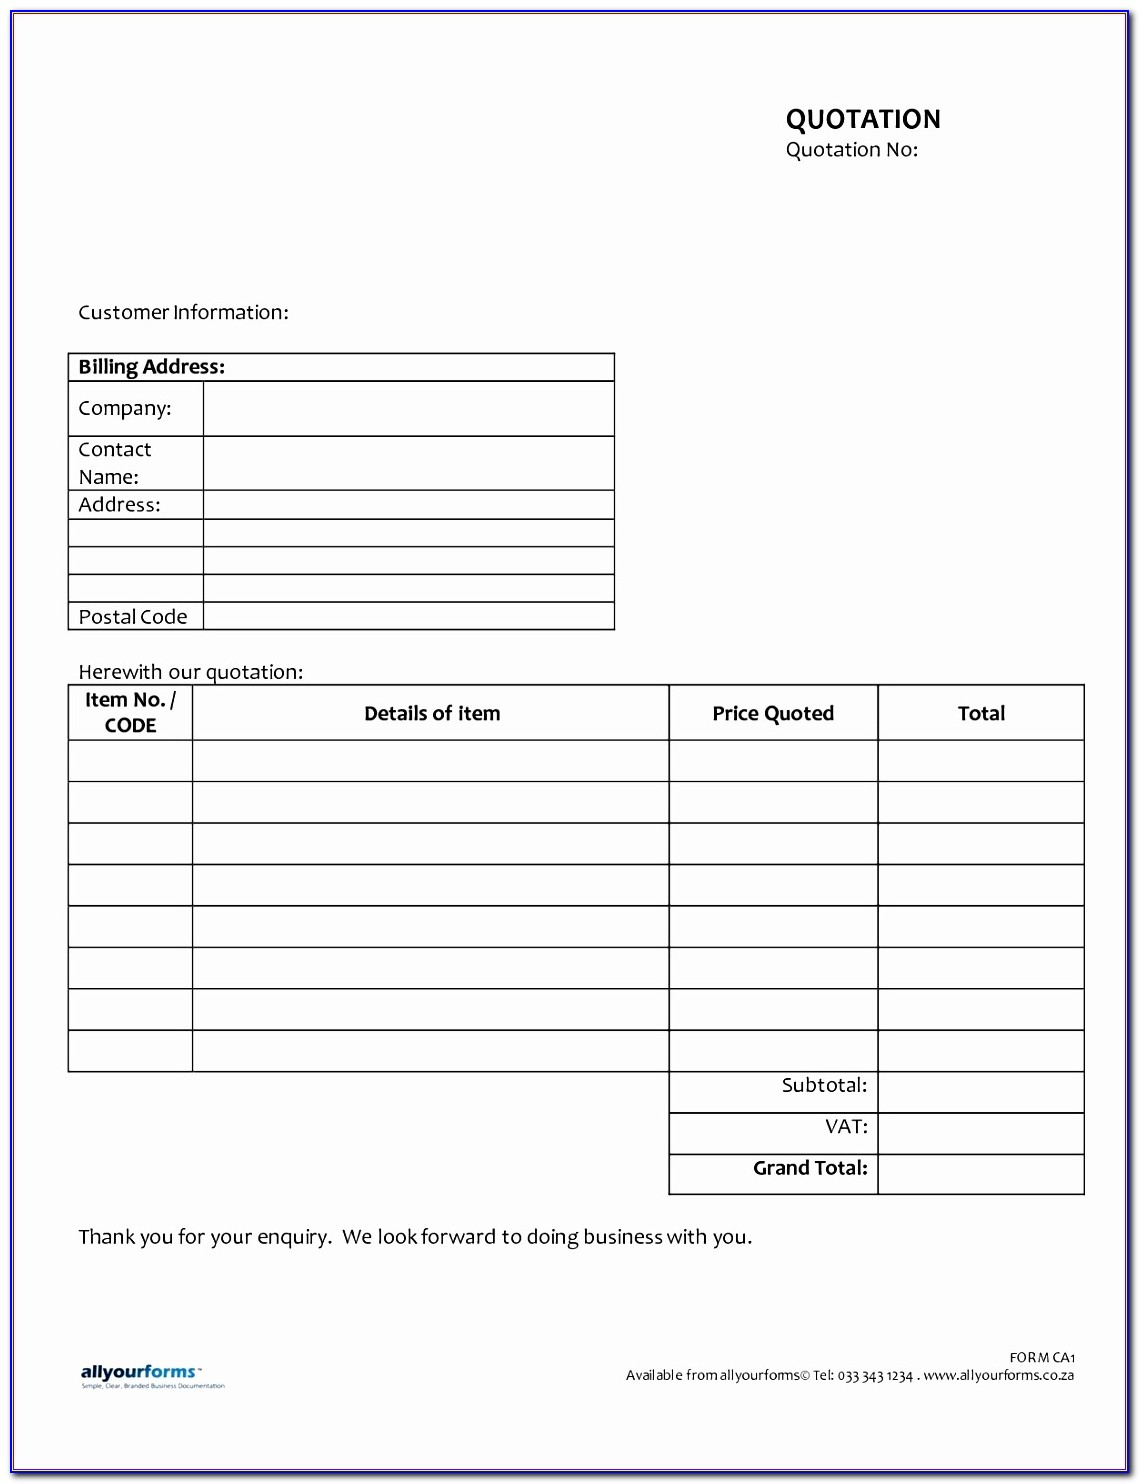 Payroll Slip Template Excel Wseer Elegant Quotation Allyourforms